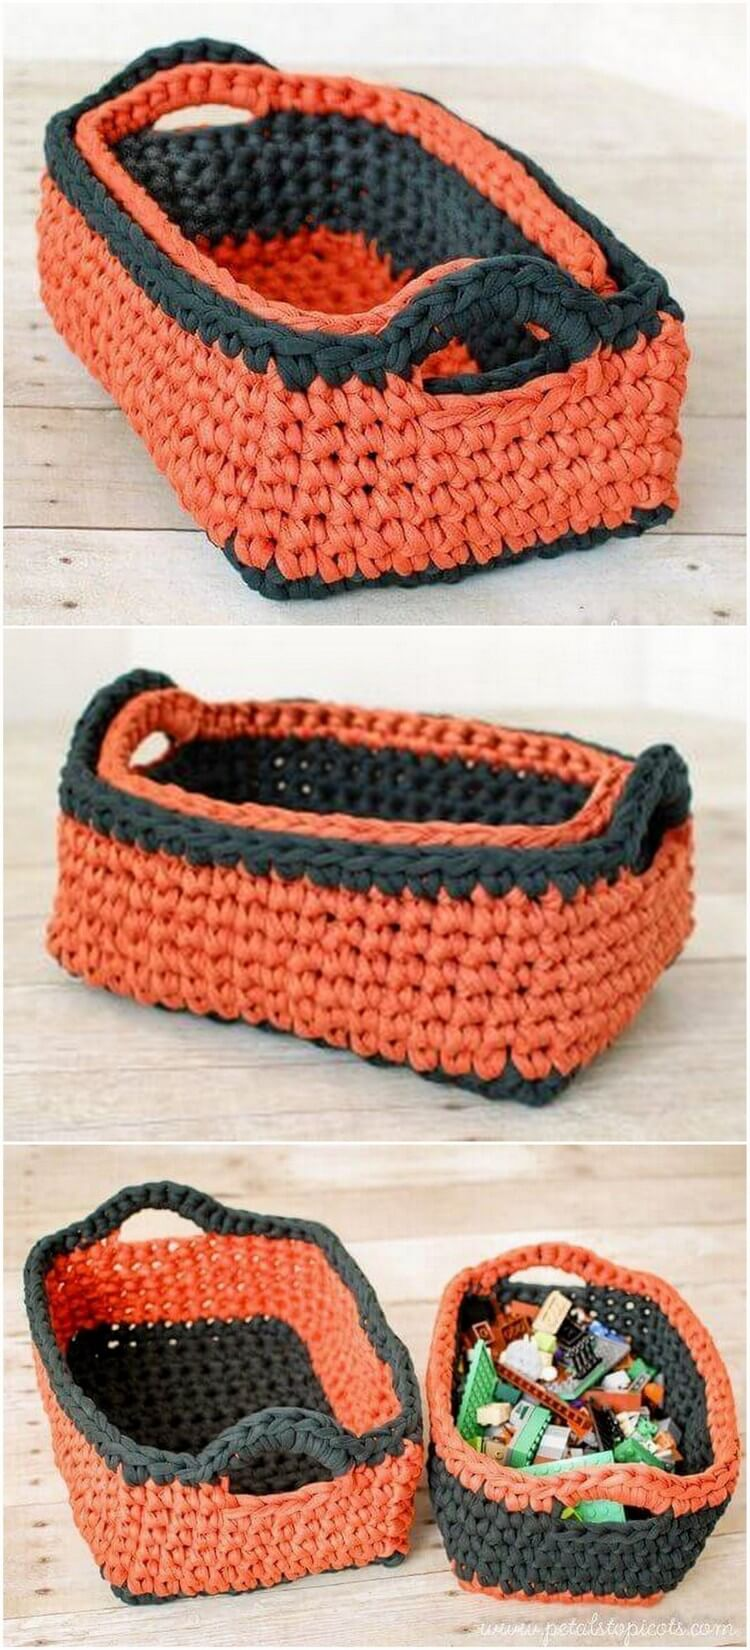 Crochet Basket Pattern (80)